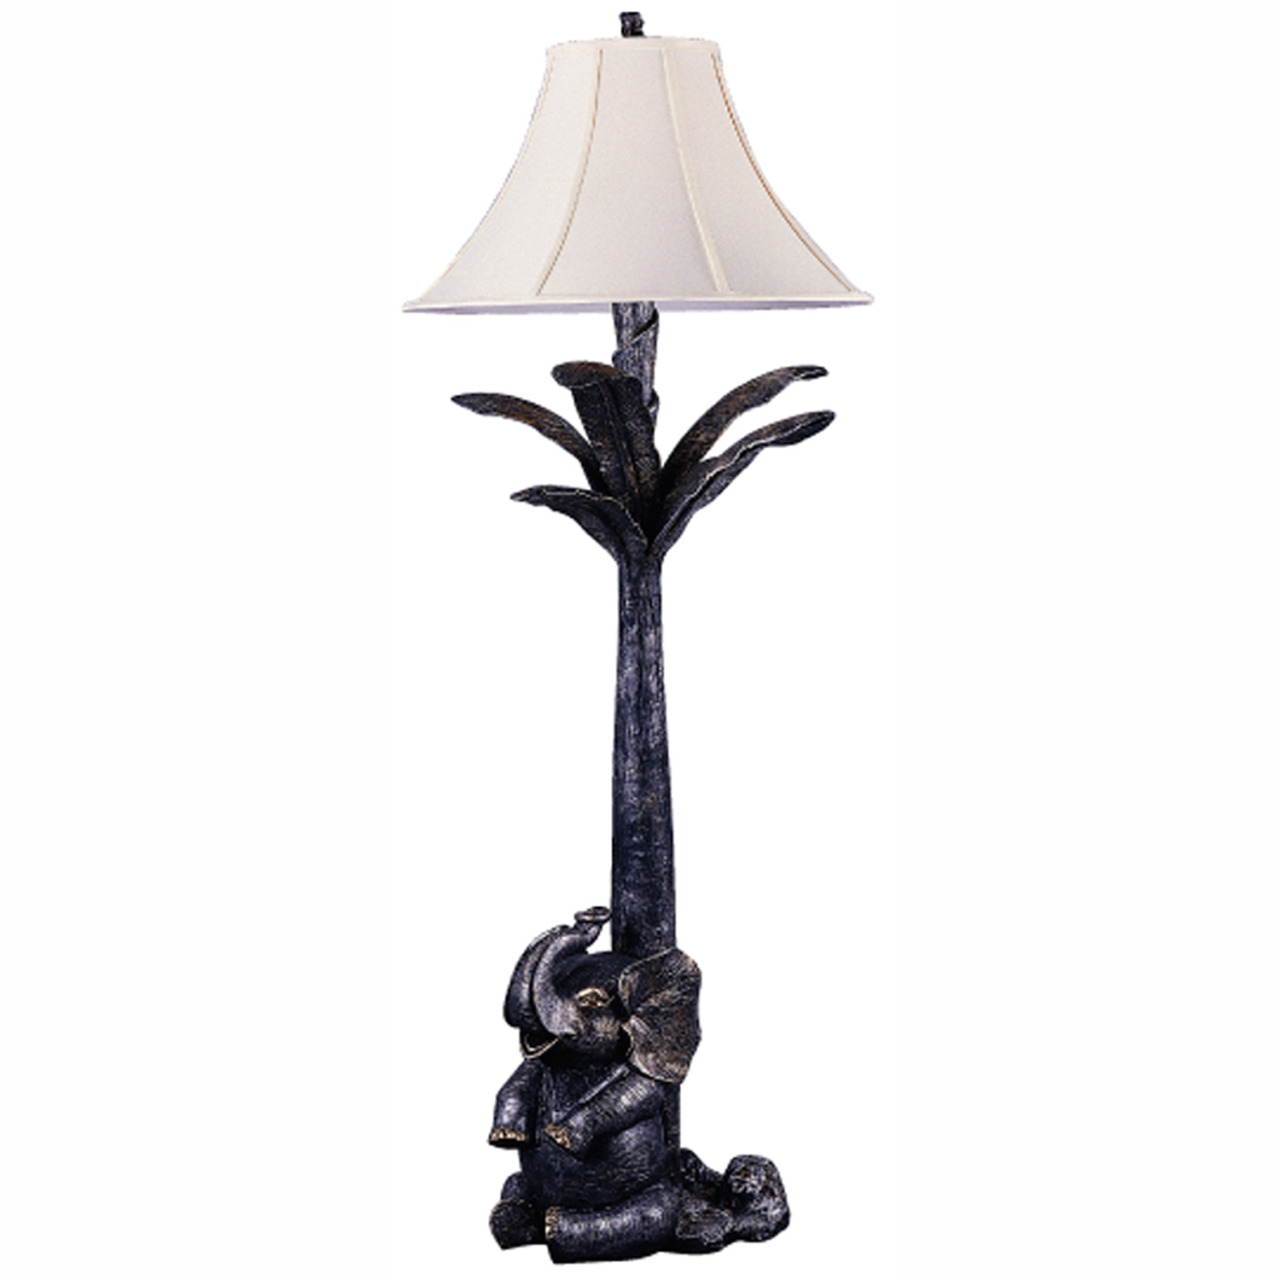 Product of the Week - Triarch Lighting 31338 Elephant Floor Lamp This 1 Light Floor Lamp from the Elephant collection by Triarch will enhance your home with a perfect mix of form and function. The features include a Bronze Silver Patina With Antique Gold Highlights finish applied by experts.